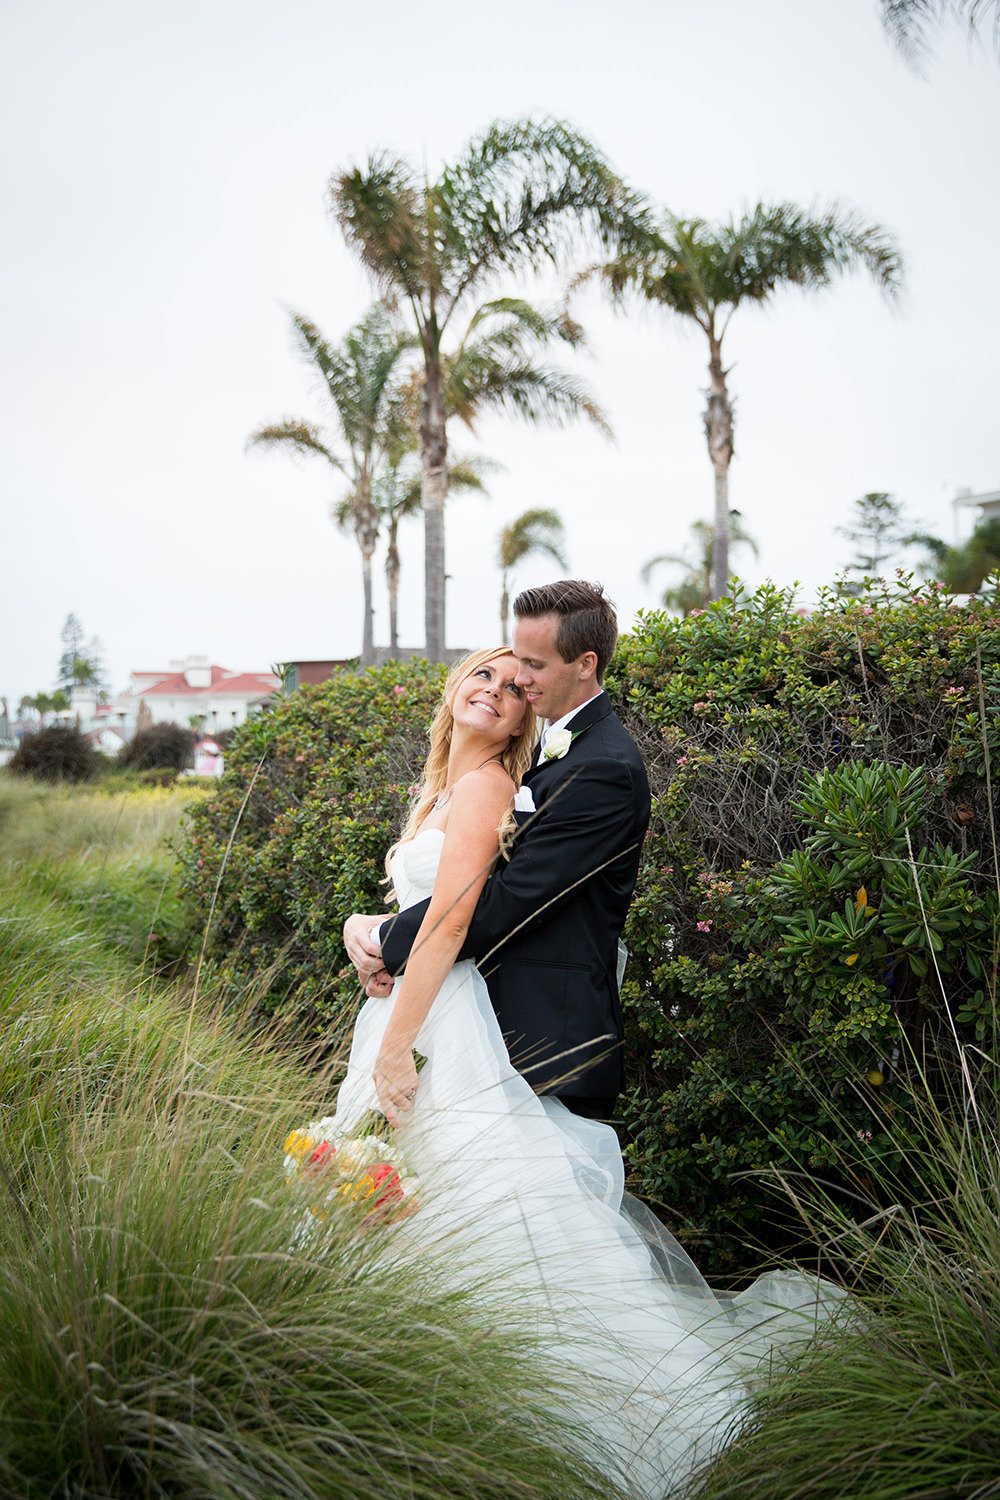 Bride and groom wedding portrait in tall grass at the sand dunes in Coronado